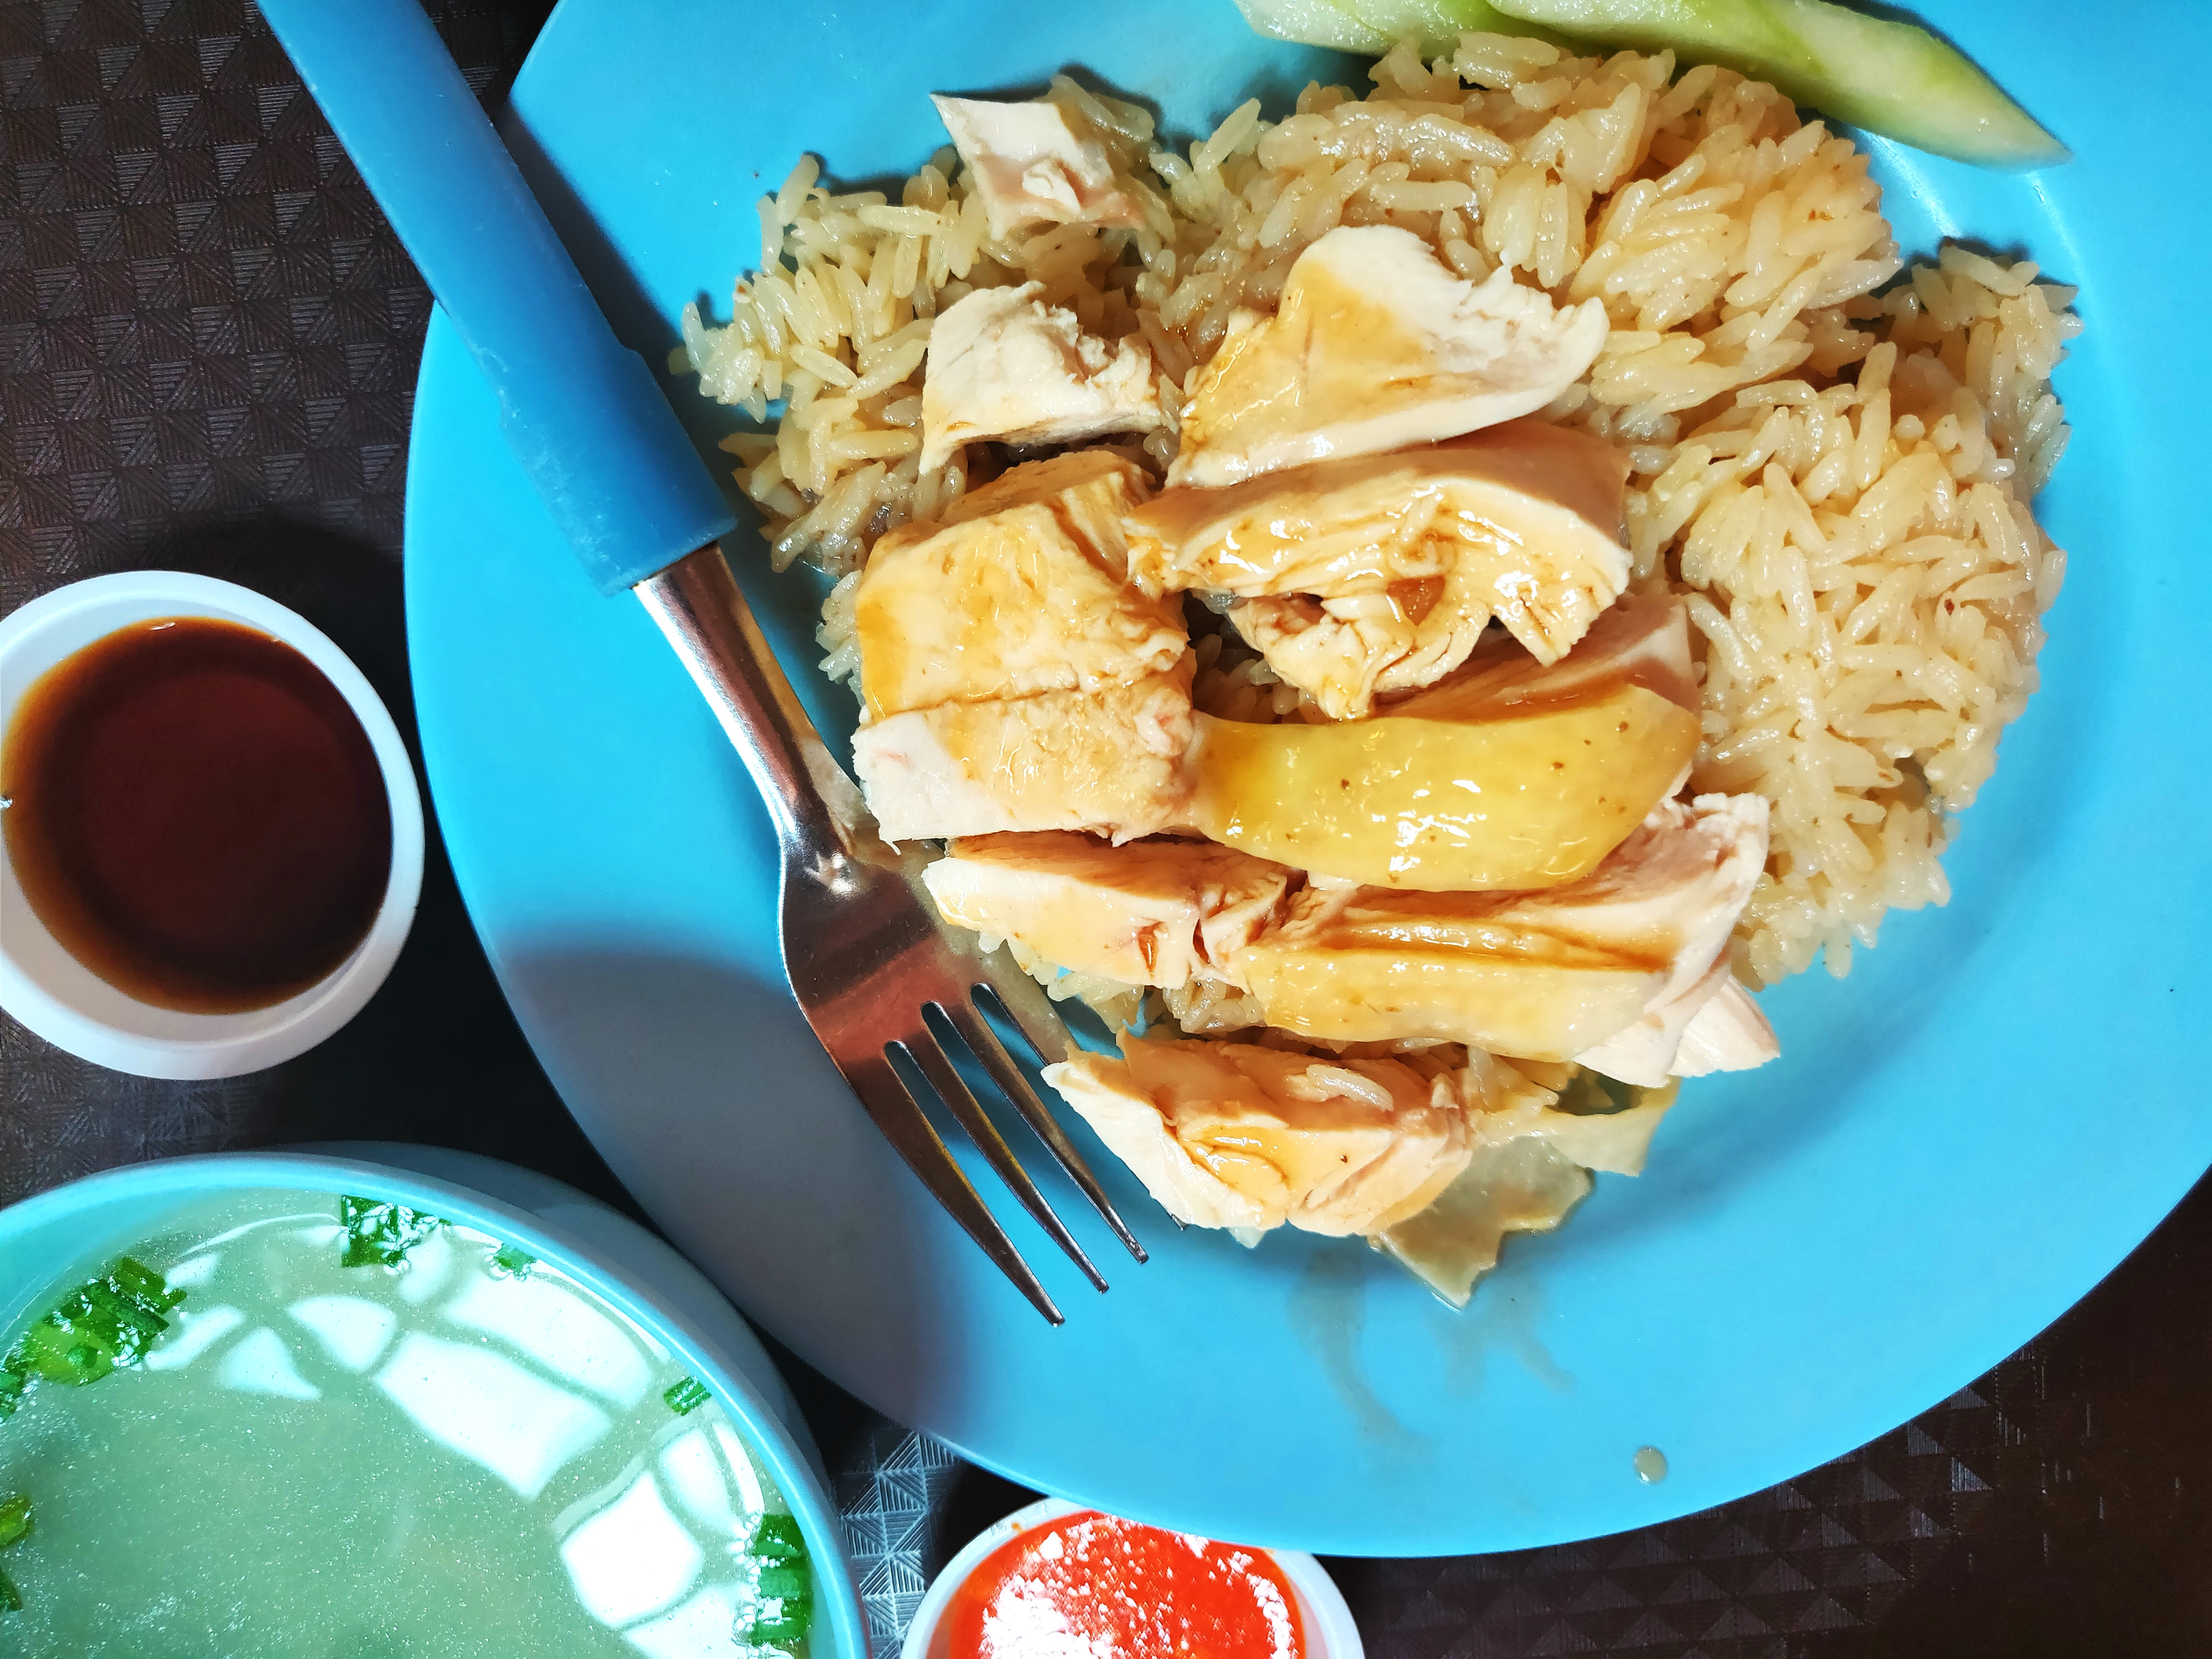 One of the top-selling dishes is the Tian Hainanese Chicken Rice. The late Anthony Bourdain wanted to take it back home to New York